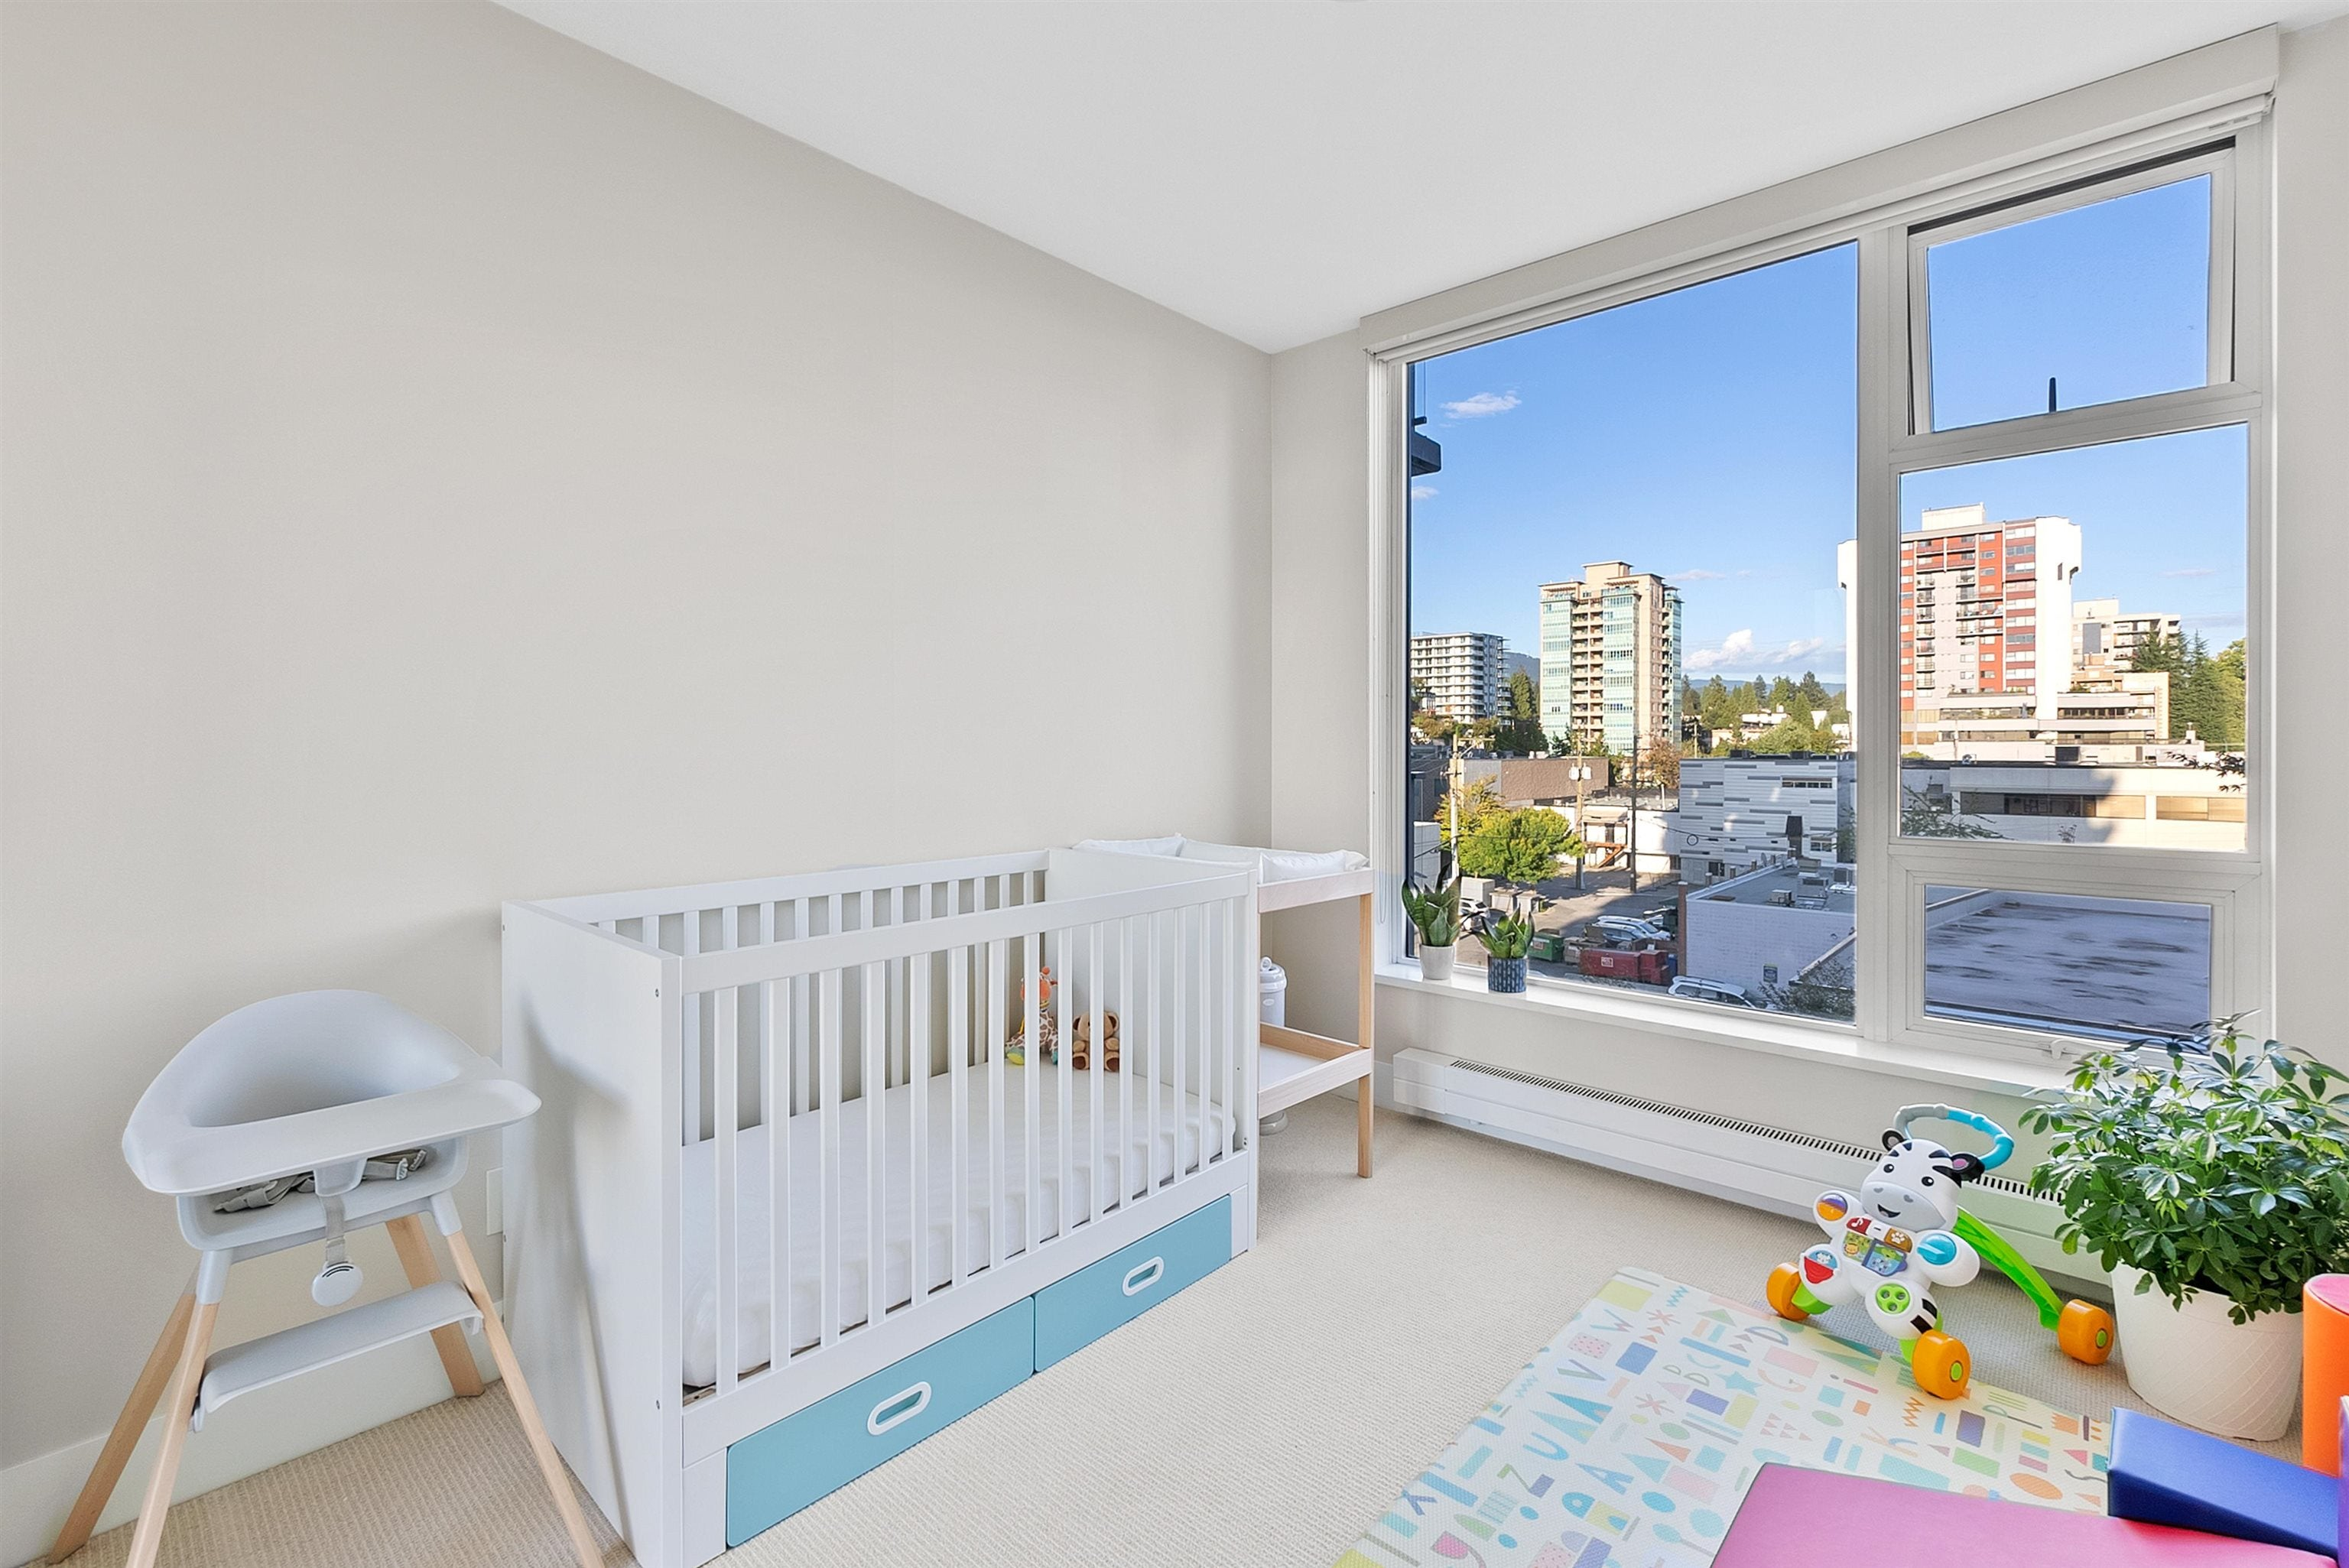 503 150 W 15TH STREET - Central Lonsdale Apartment/Condo for sale, 2 Bedrooms (R2624732) - #18